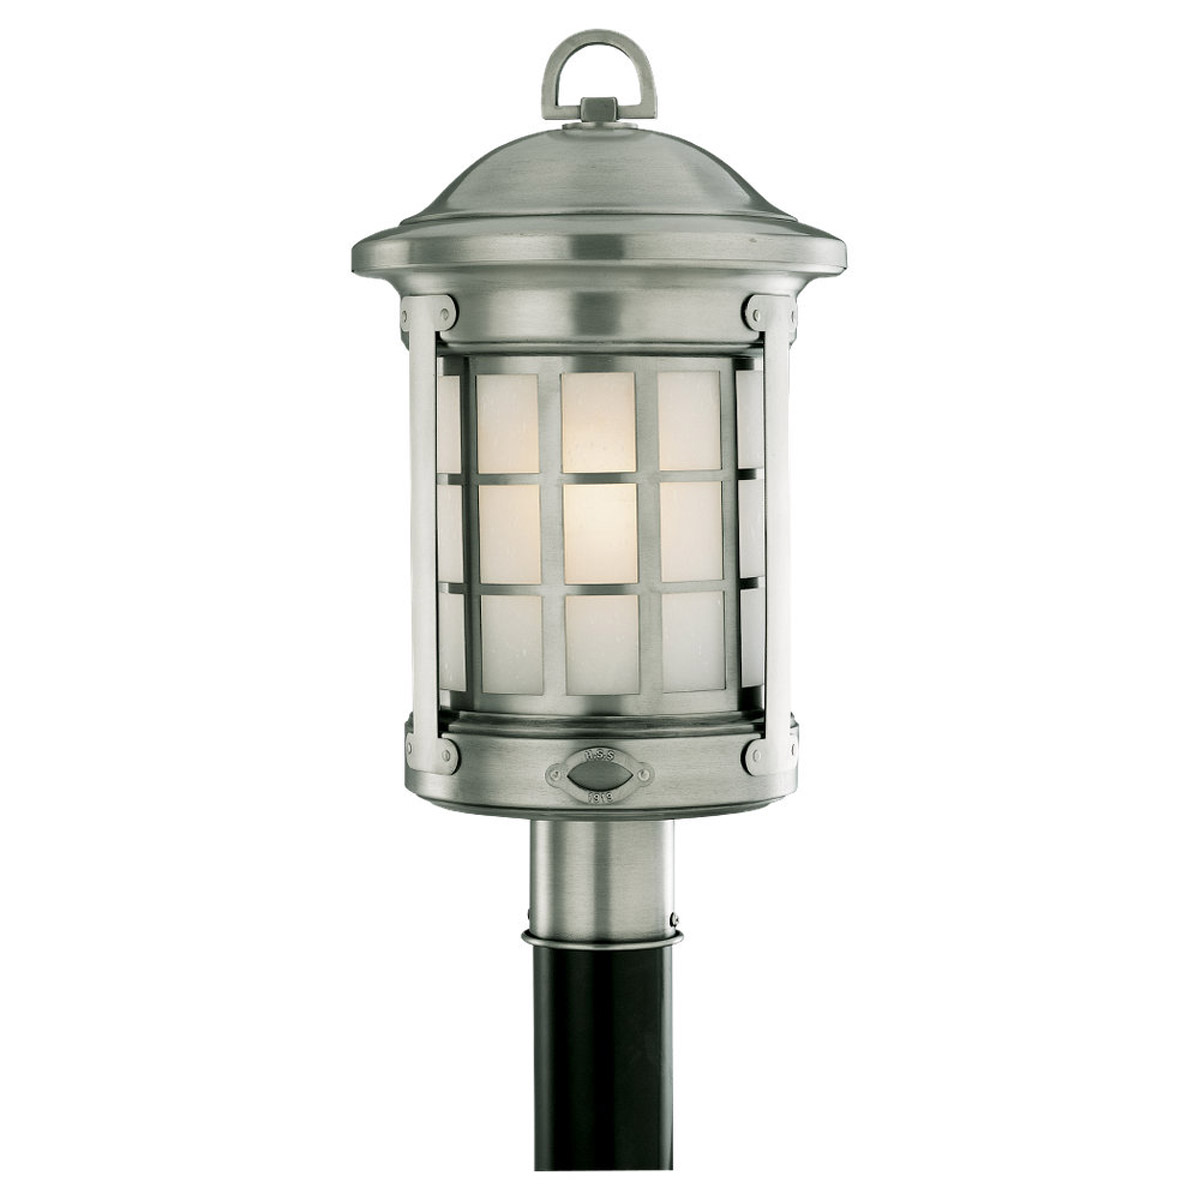 Sea Gull Lighting HSS CO-OP 1 Light Outdoor Post Lantern in Brushed Nickel 82041-962 photo